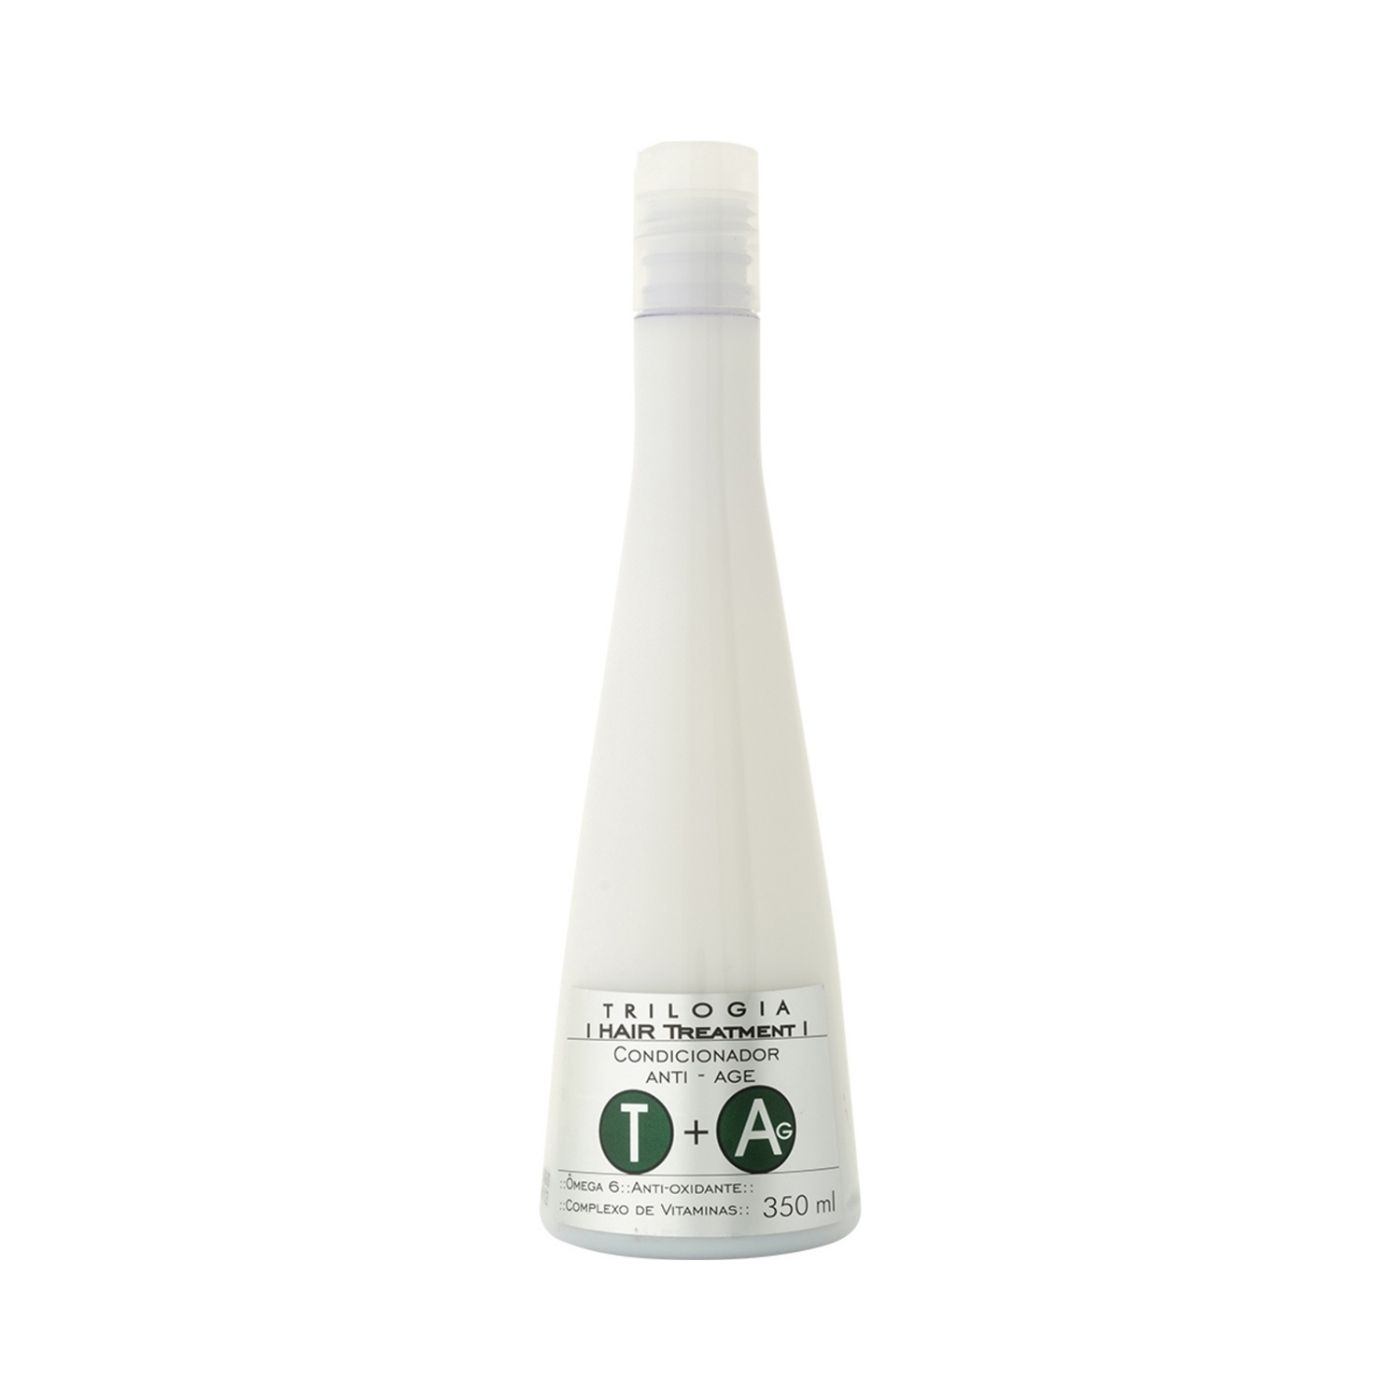 Condicionador Anti Age Trilogia - 350 ml